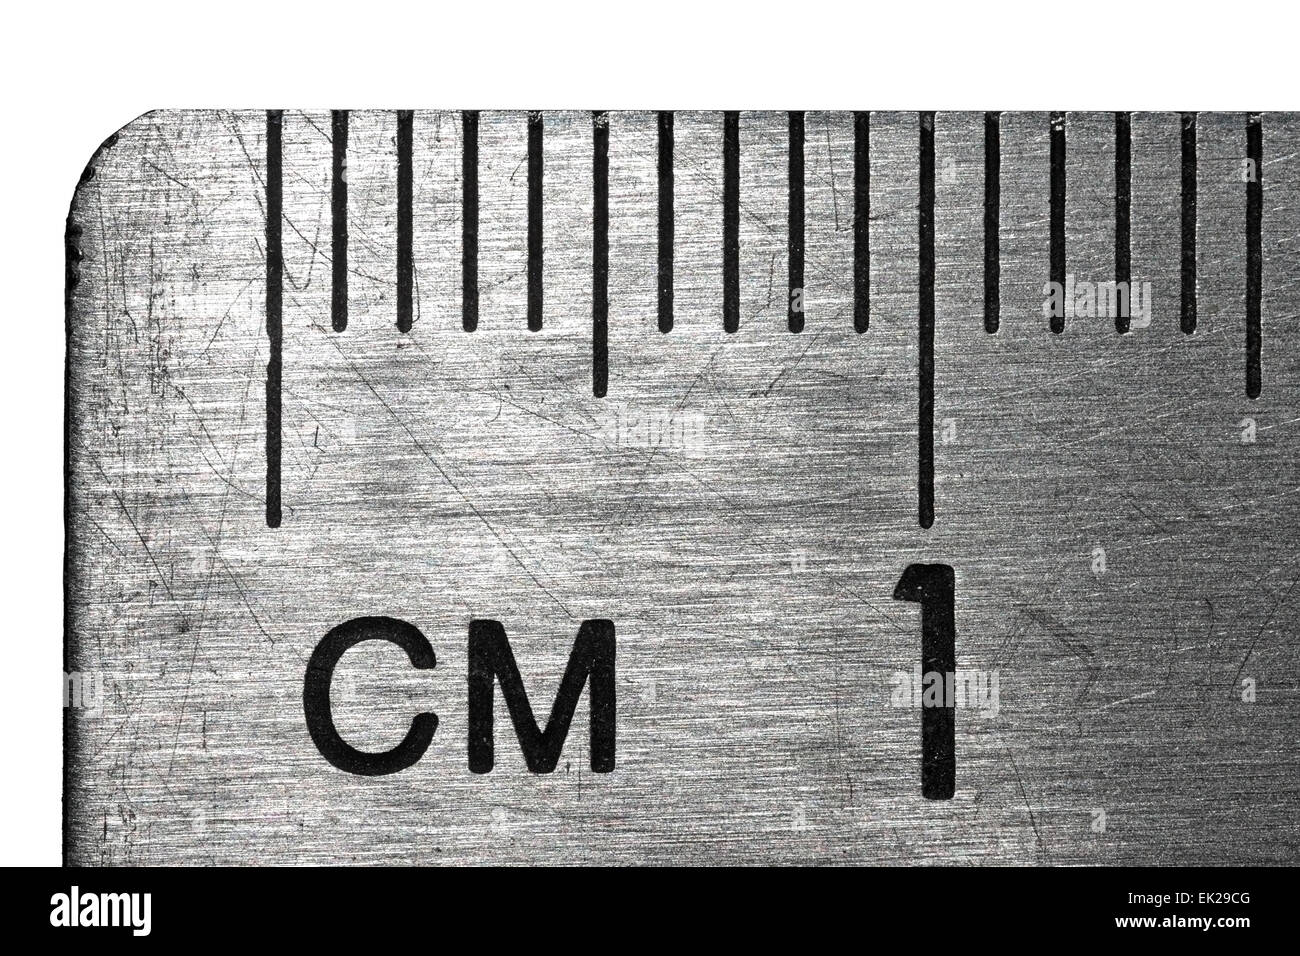 Close Up of Metric Brushed Steel Rule Calibrated in mm and cm - Stock Image